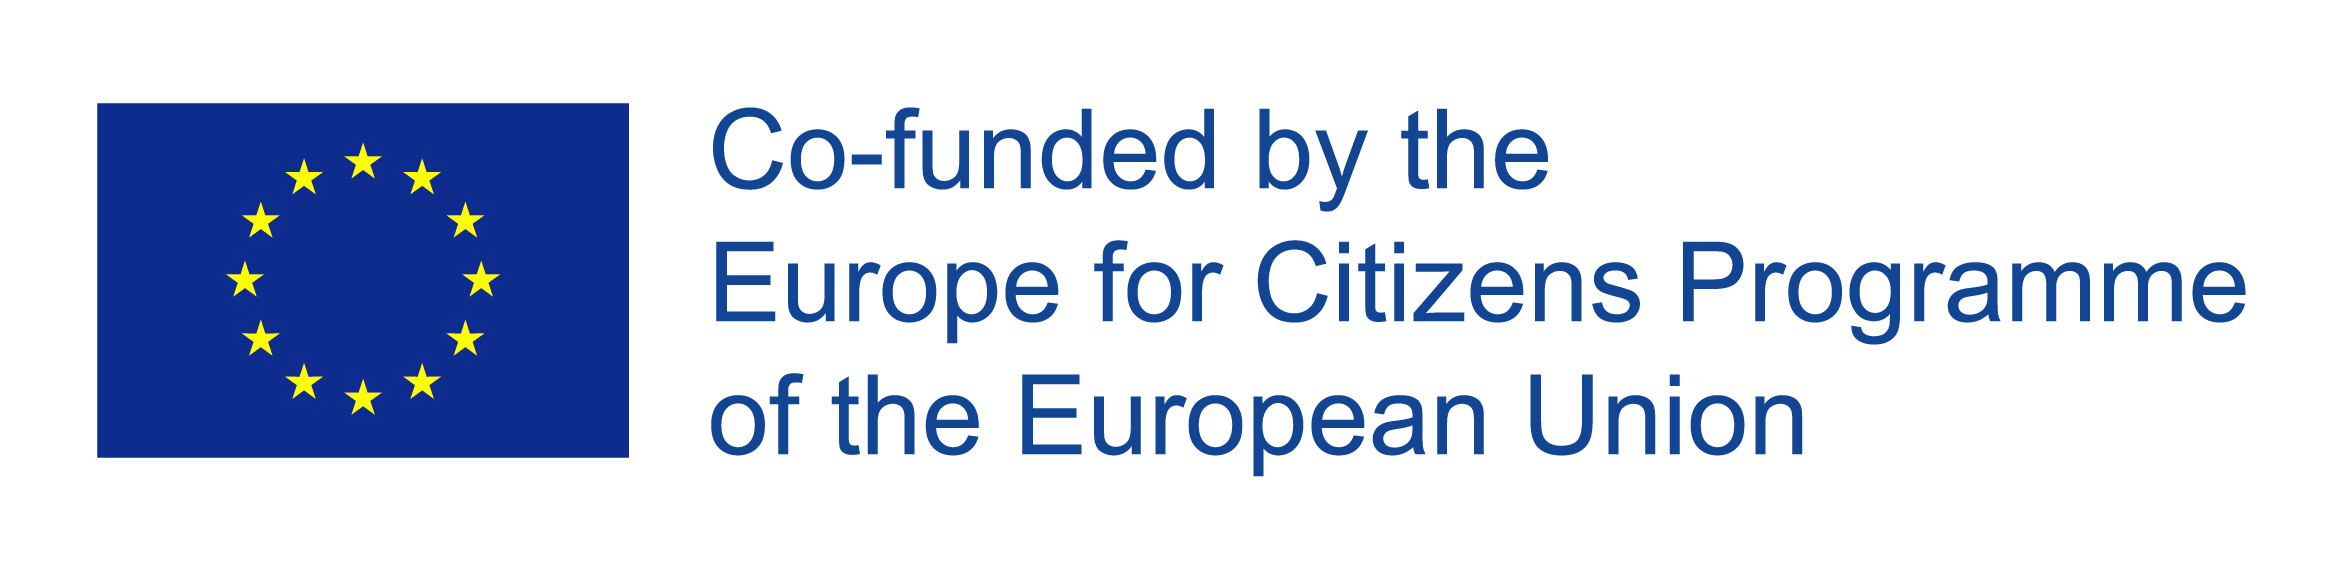 eu_flag_europe_for_citizens_co_funded_en_rgb_right_.jpg